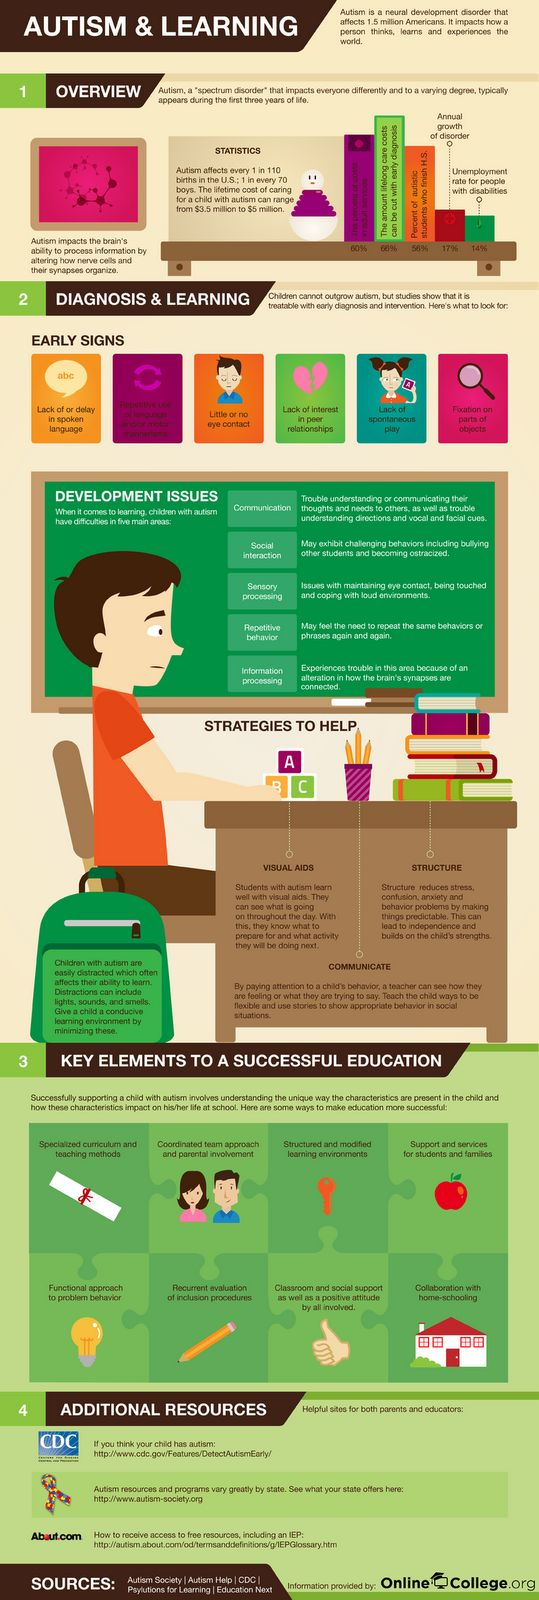 #Autism and #Learning. #Psychology #development #education #infographic #science #communication #behavior #school